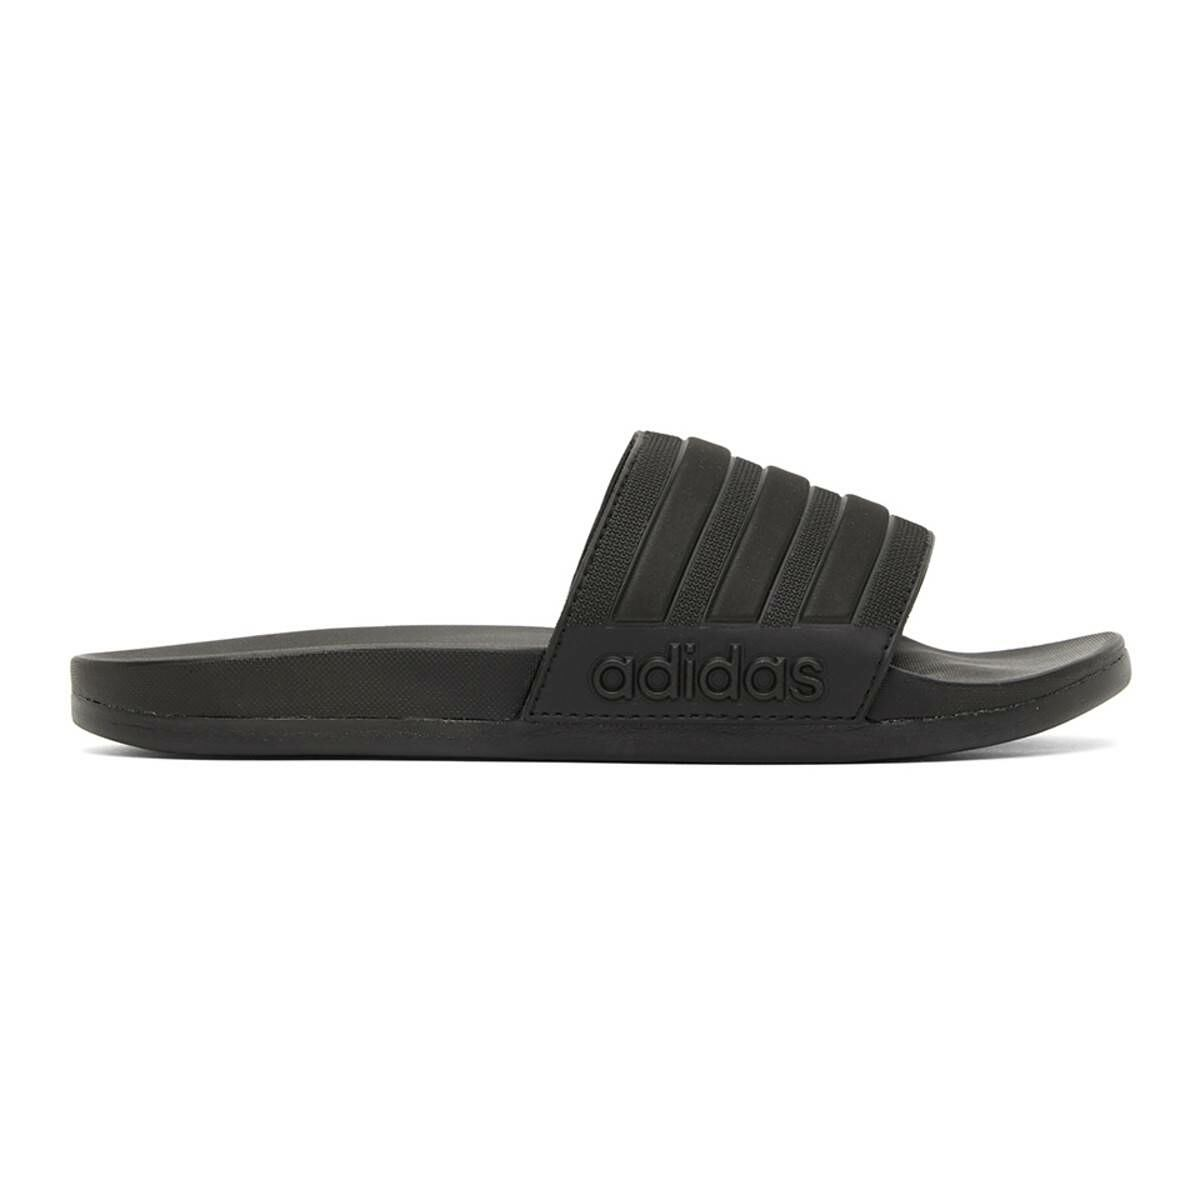 adidas Originals Black Adilette Comfort Slides Ssense USA MEN Men SHOES Mens SANDALS